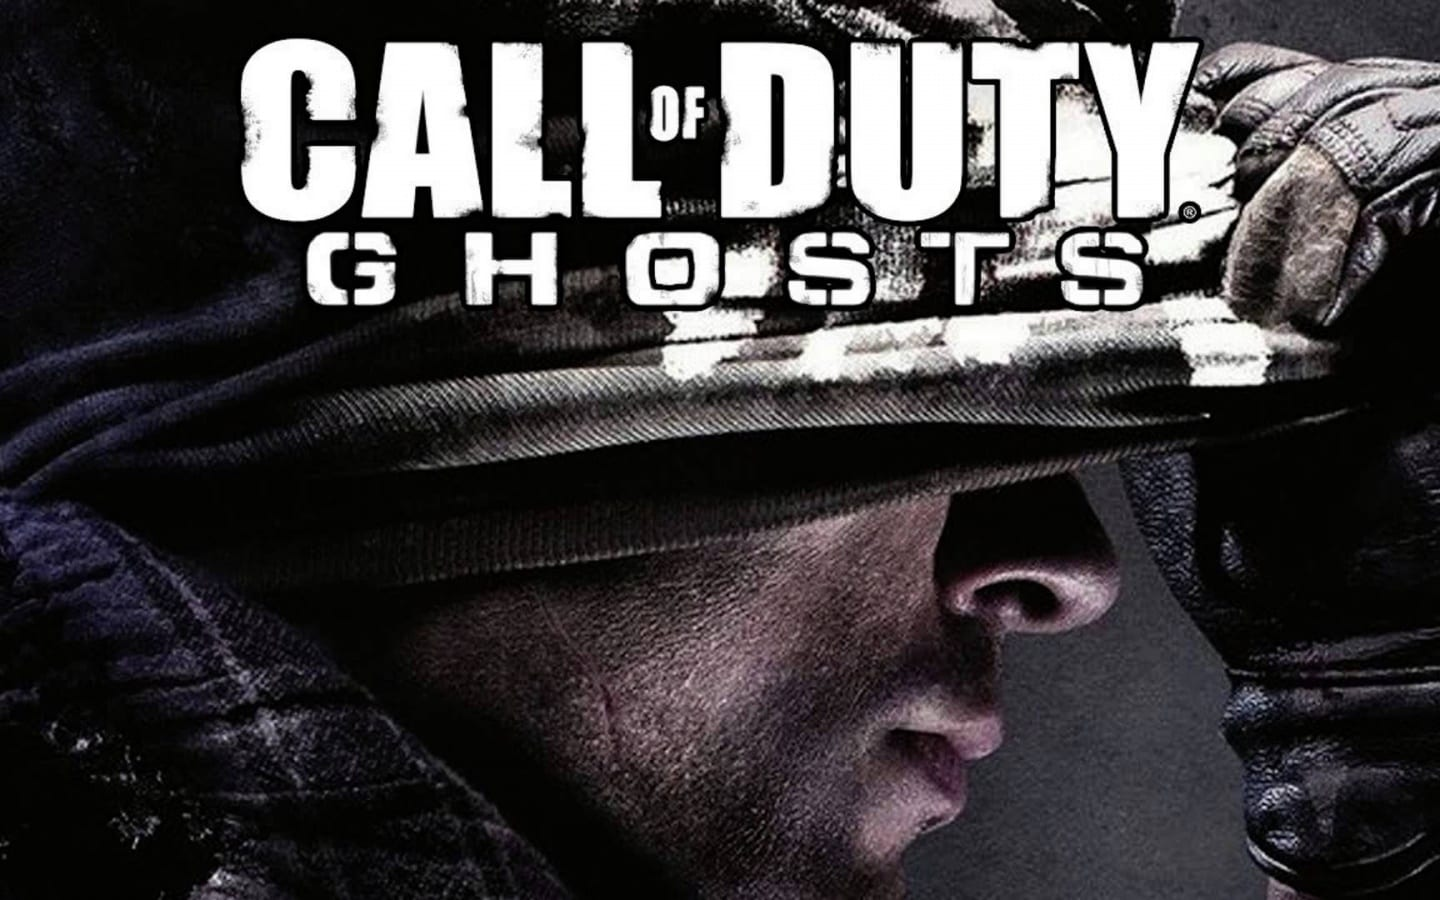 Call of Duty: Ghosts beta and what that means to the Call of Duty franchise.